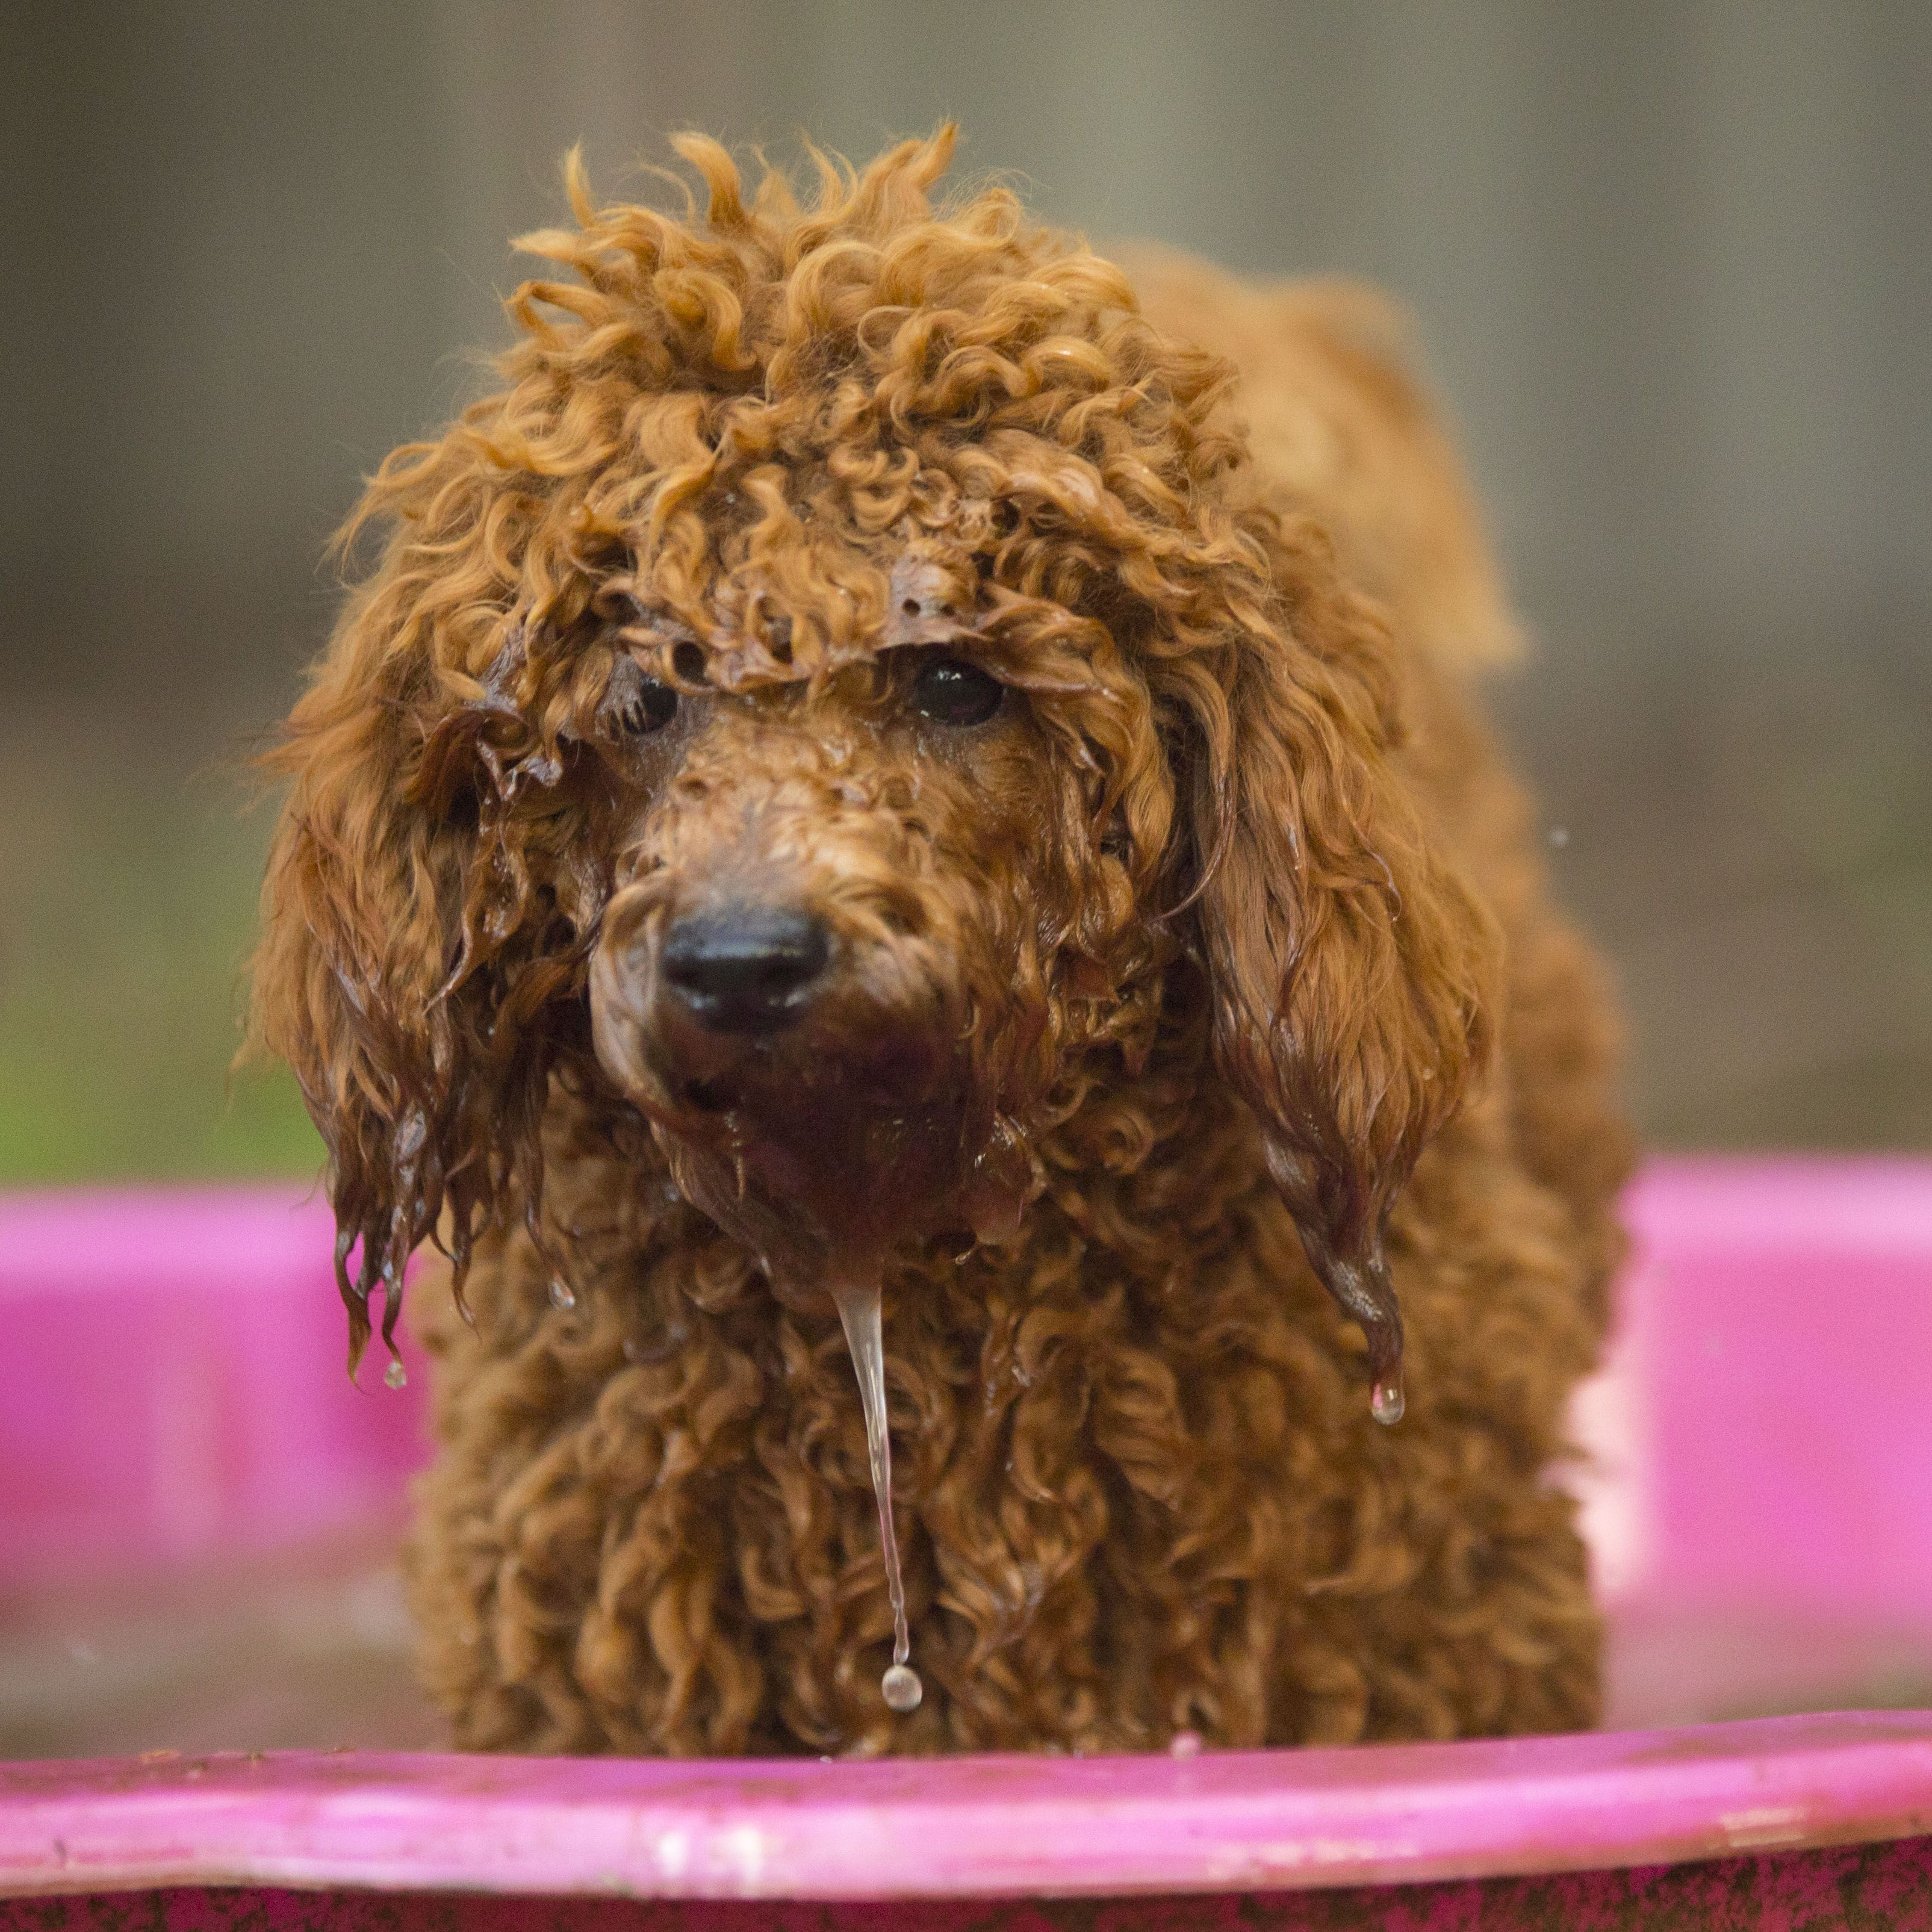 Our Dogs Love Playing In Water Cavoodles Are A Mix Of The Cavalier King Charles Spaniel And The Poodle Miniature Or Toy Both Breeds Poodle Mix Poodle Dogs